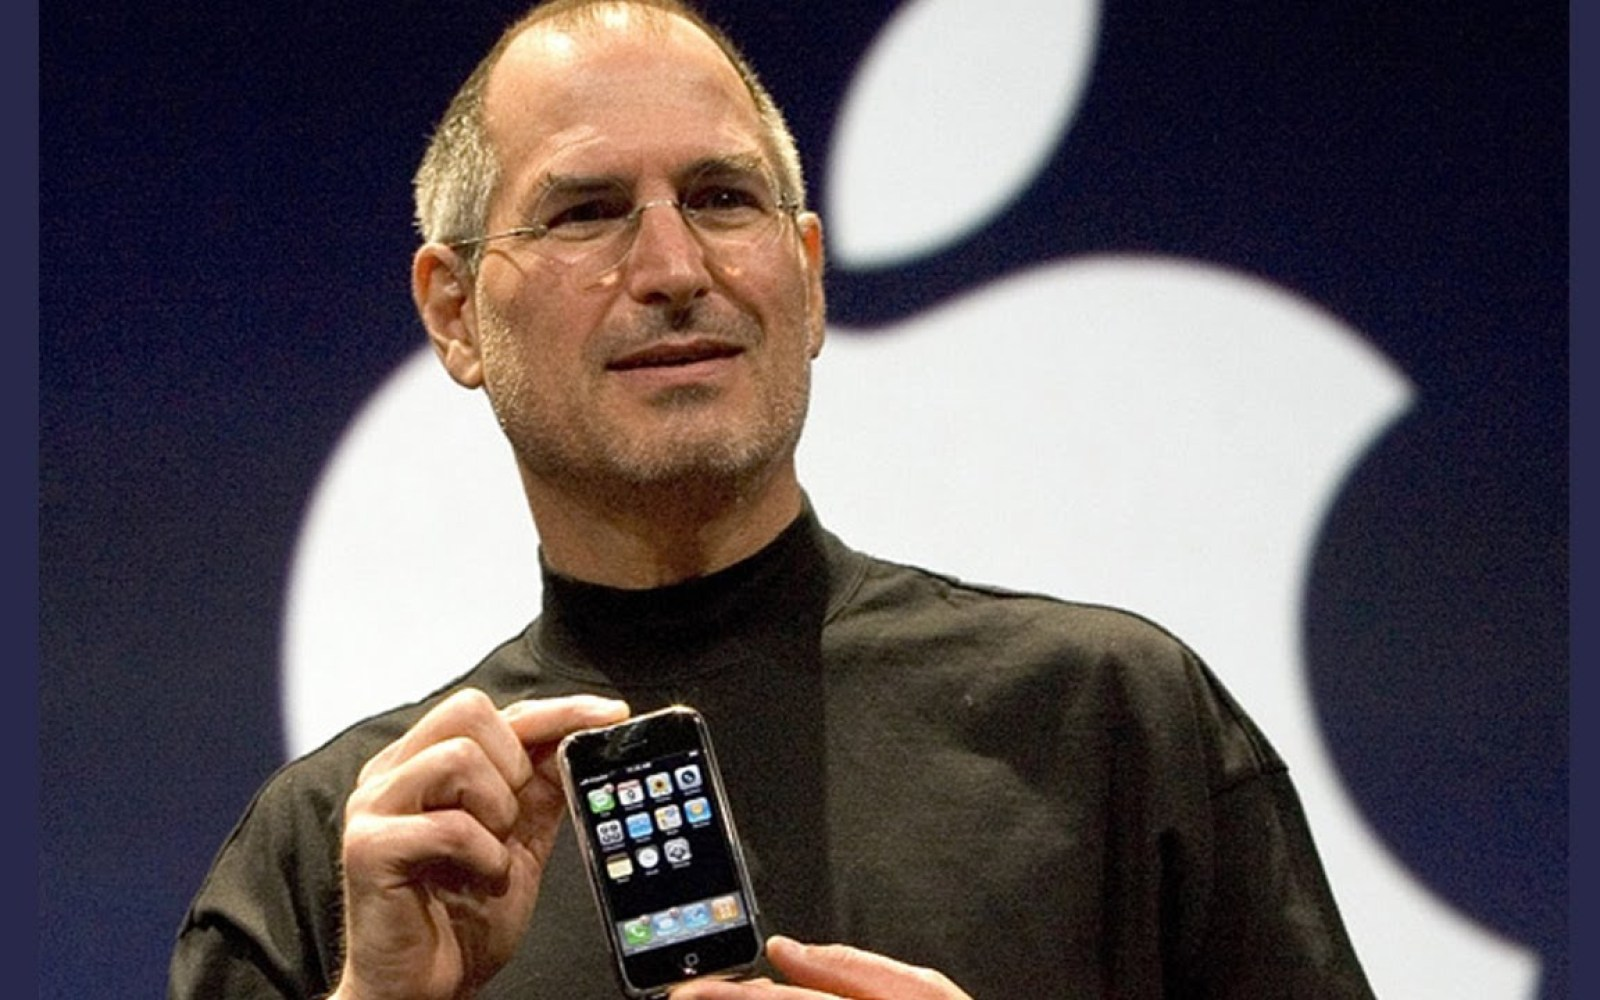 iPhone tops TIME's list of most influential gadgets of all time